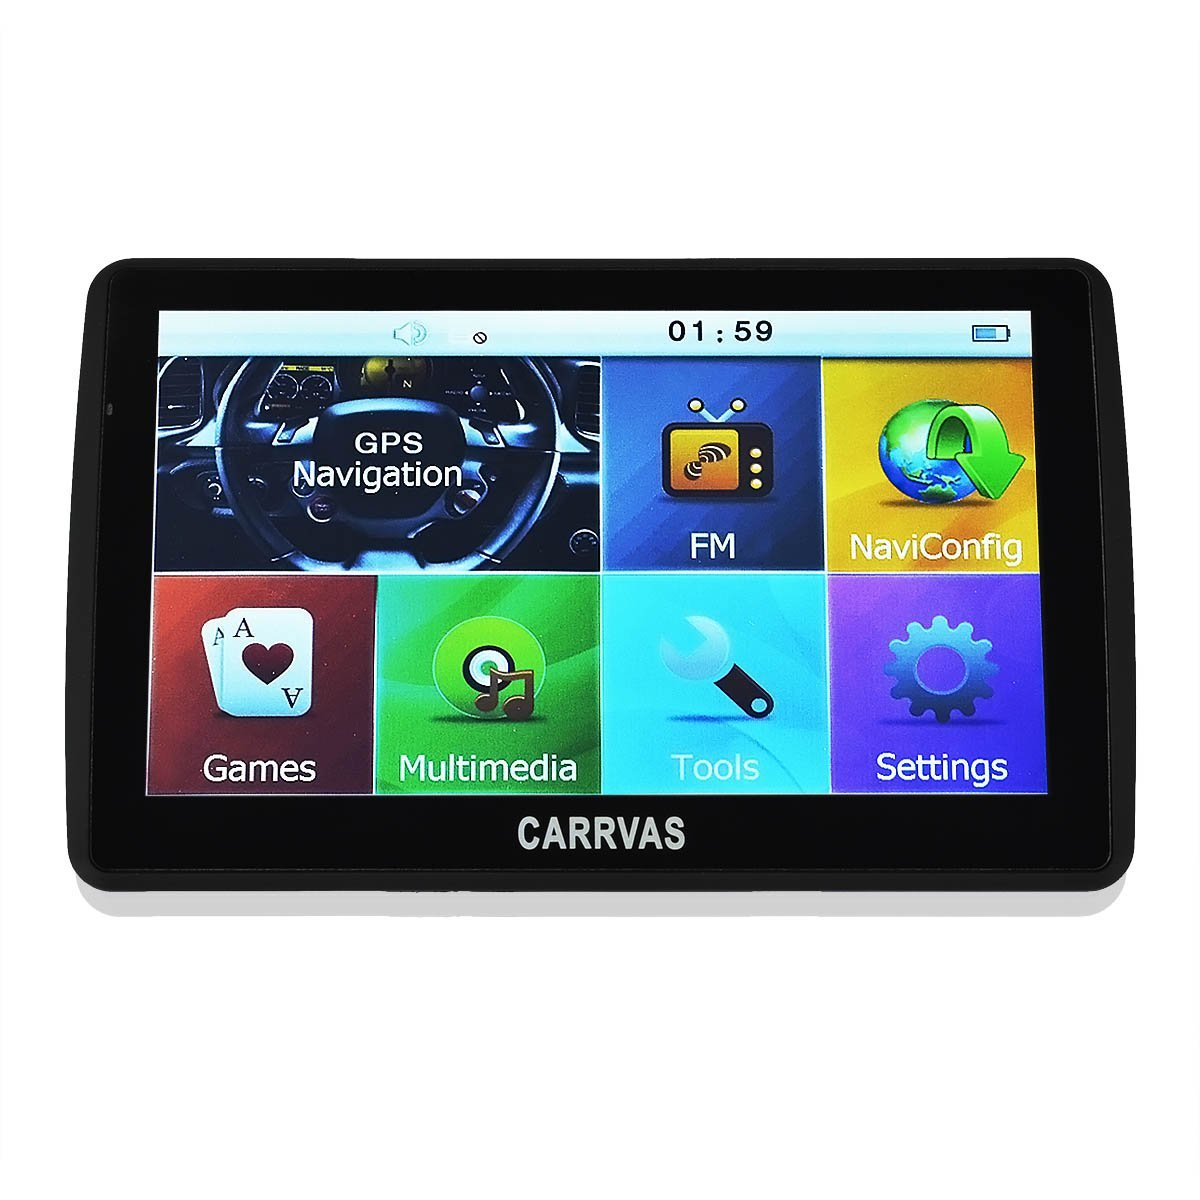 CARRVAS Inch GB Sat Nav Navigation Gps Truck Car Traffic - Gps with us and europe maps